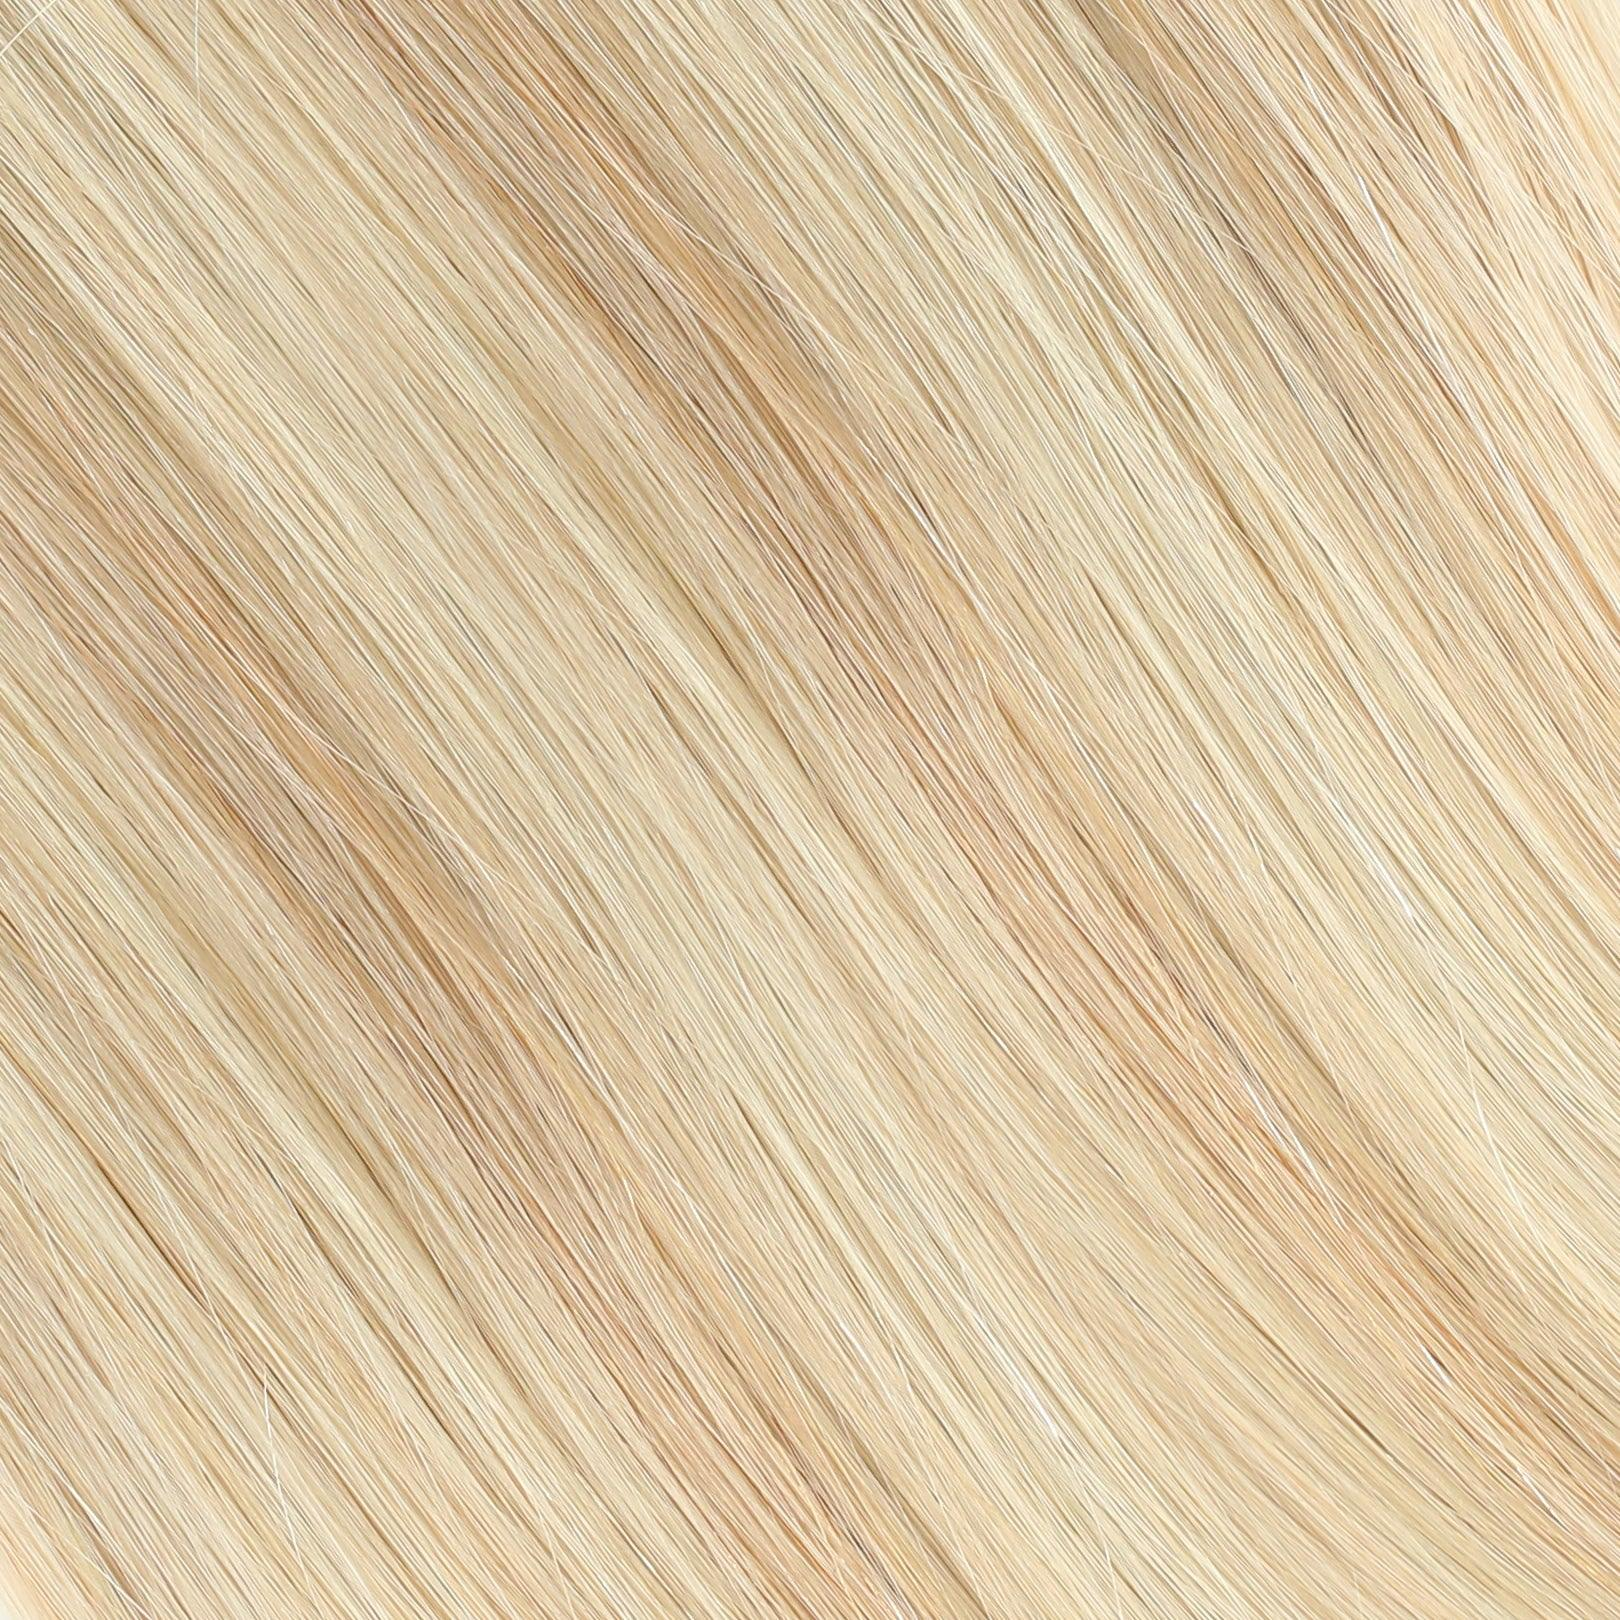 Hair Texture Swatches (20 colors) - Revo Designs